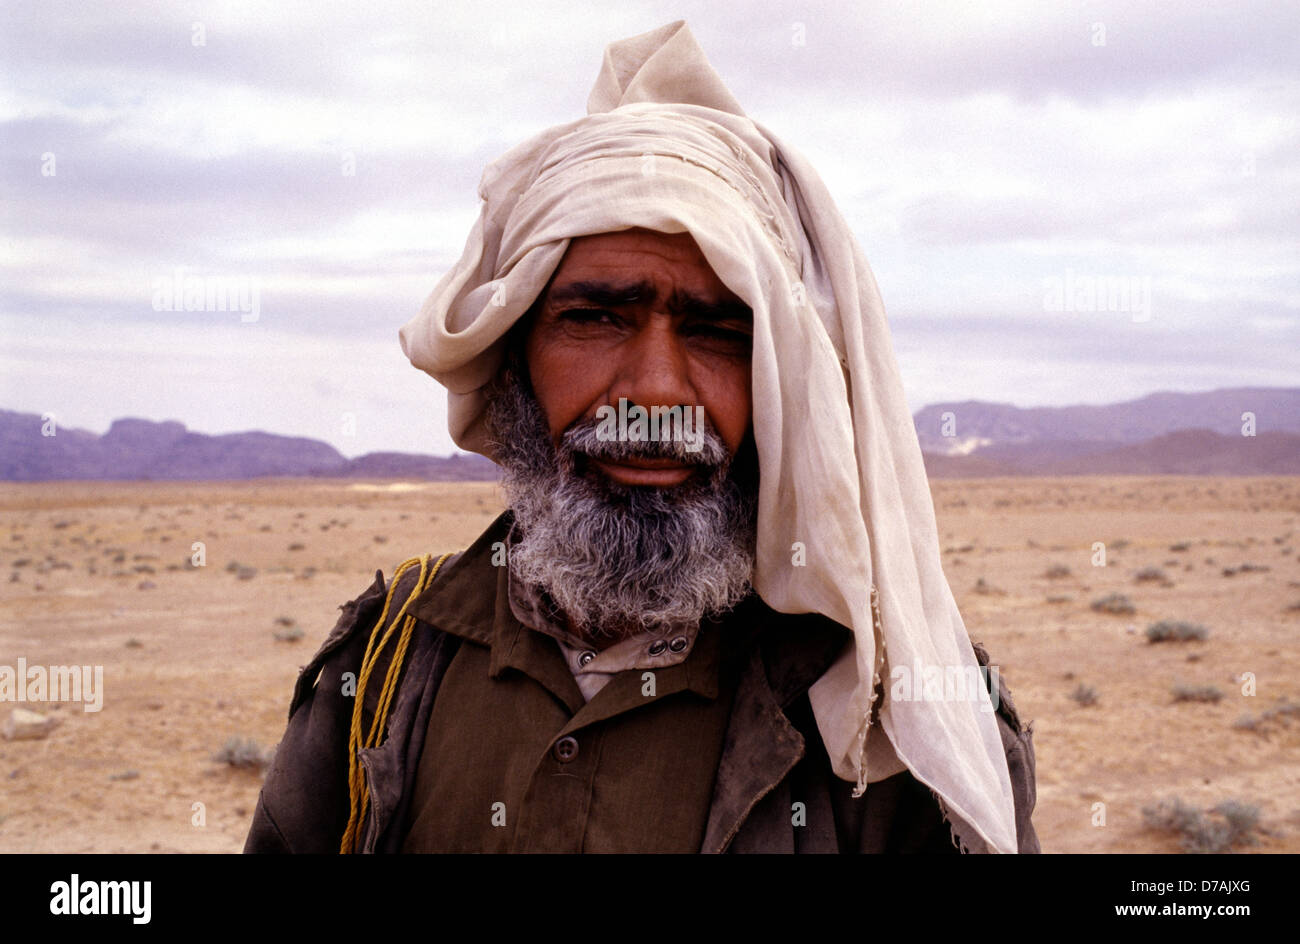 Bedouin nomad member of the Zawaideh tribe, native to the deserts of southern Jordan and western Saudi Arabia in - Stock Image